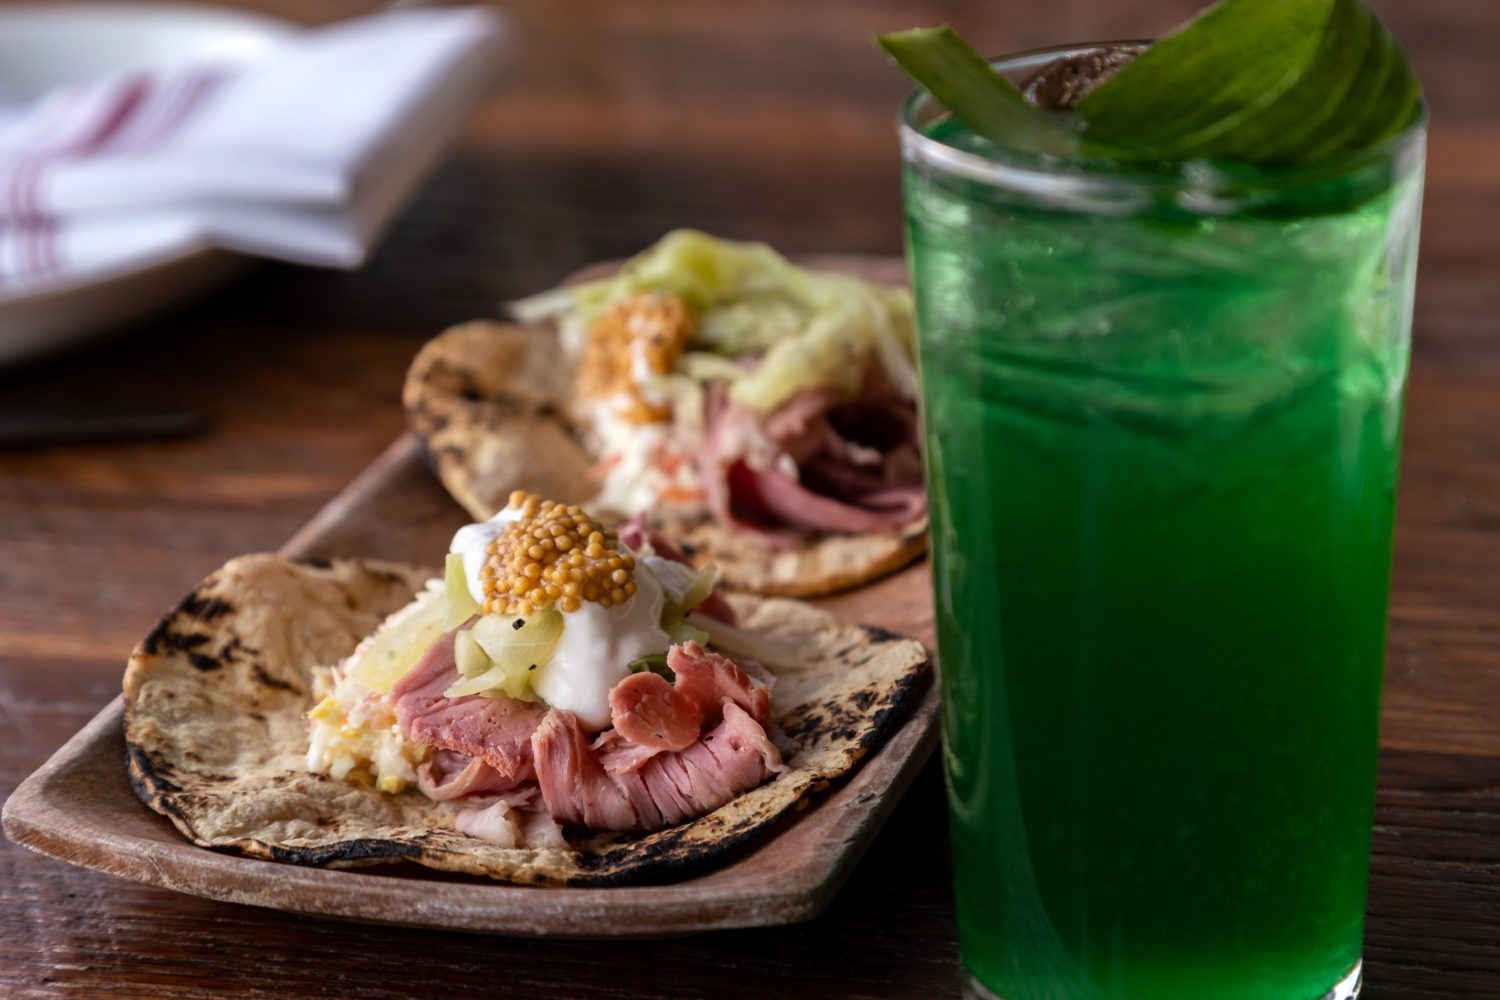 Corned beef tacos and green cocktails for St. Patricks Day brunch at Tico. Photograph by Clark Douglas.